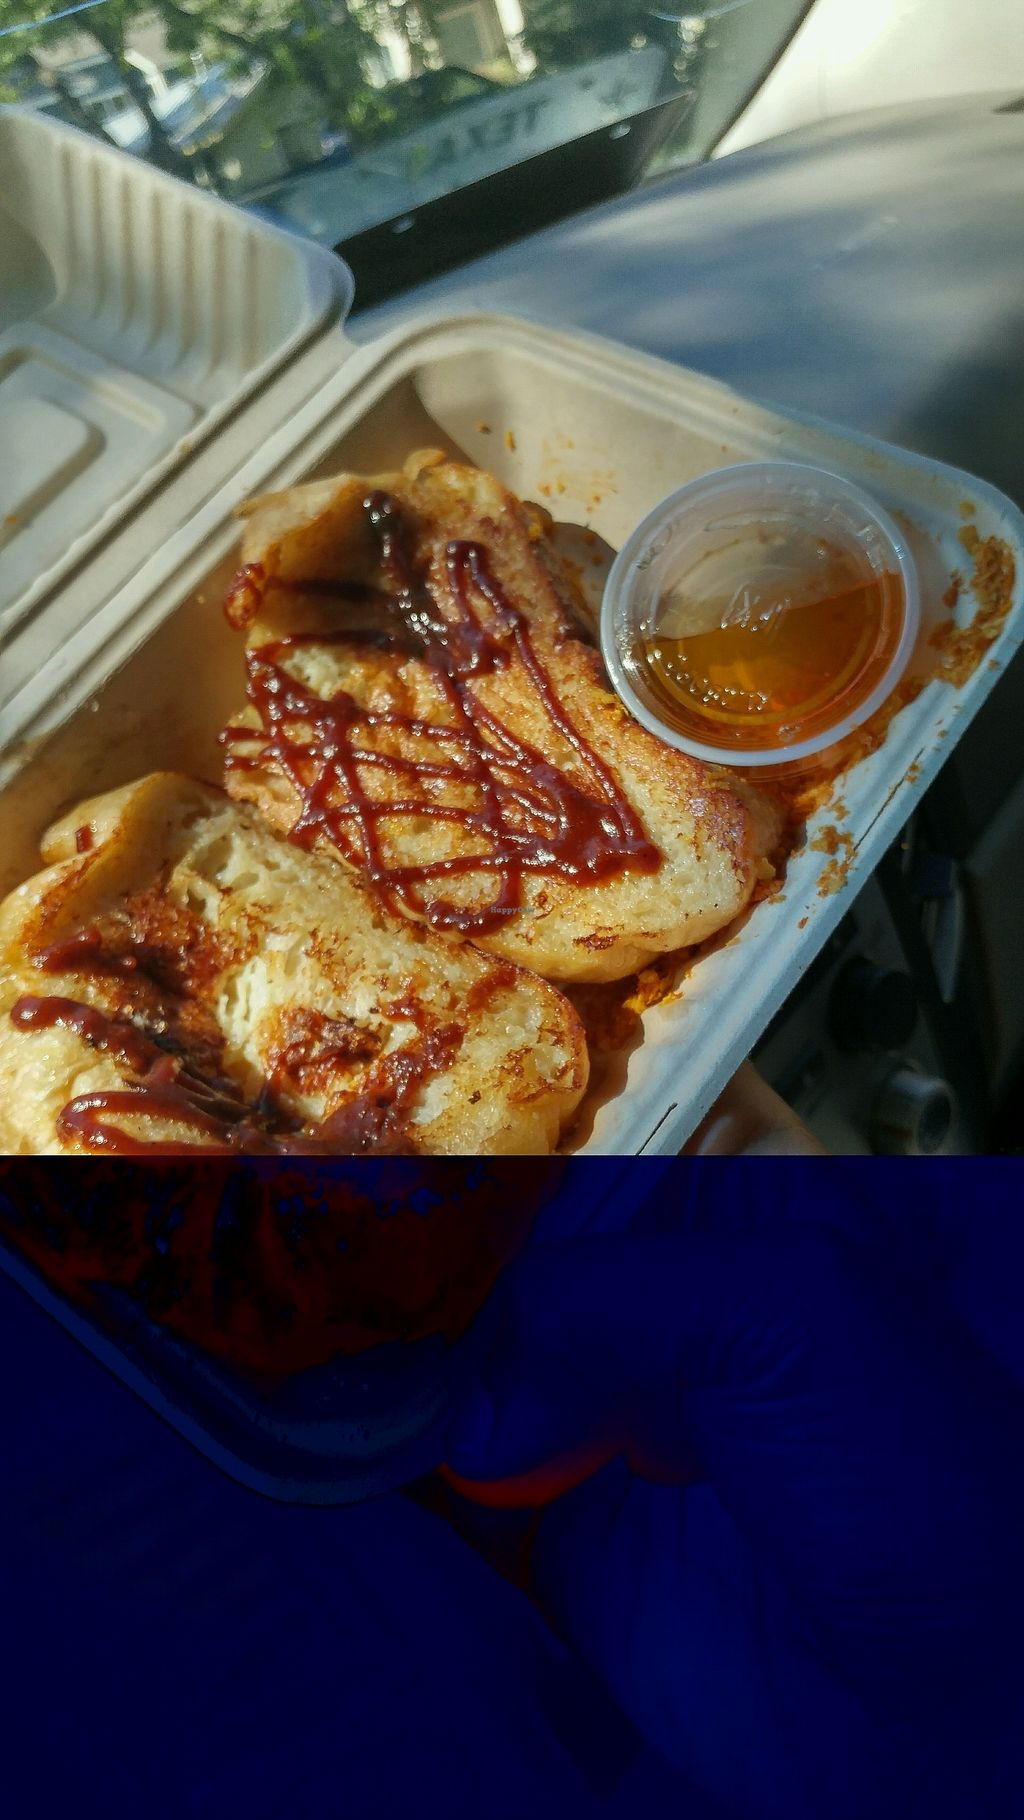 """Photo of Bistro Vonish Food Truck  by <a href=""""/members/profile/TreyLegall"""">TreyLegall</a> <br/>French Toast <br/> October 1, 2017  - <a href='/contact/abuse/image/54761/310663'>Report</a>"""